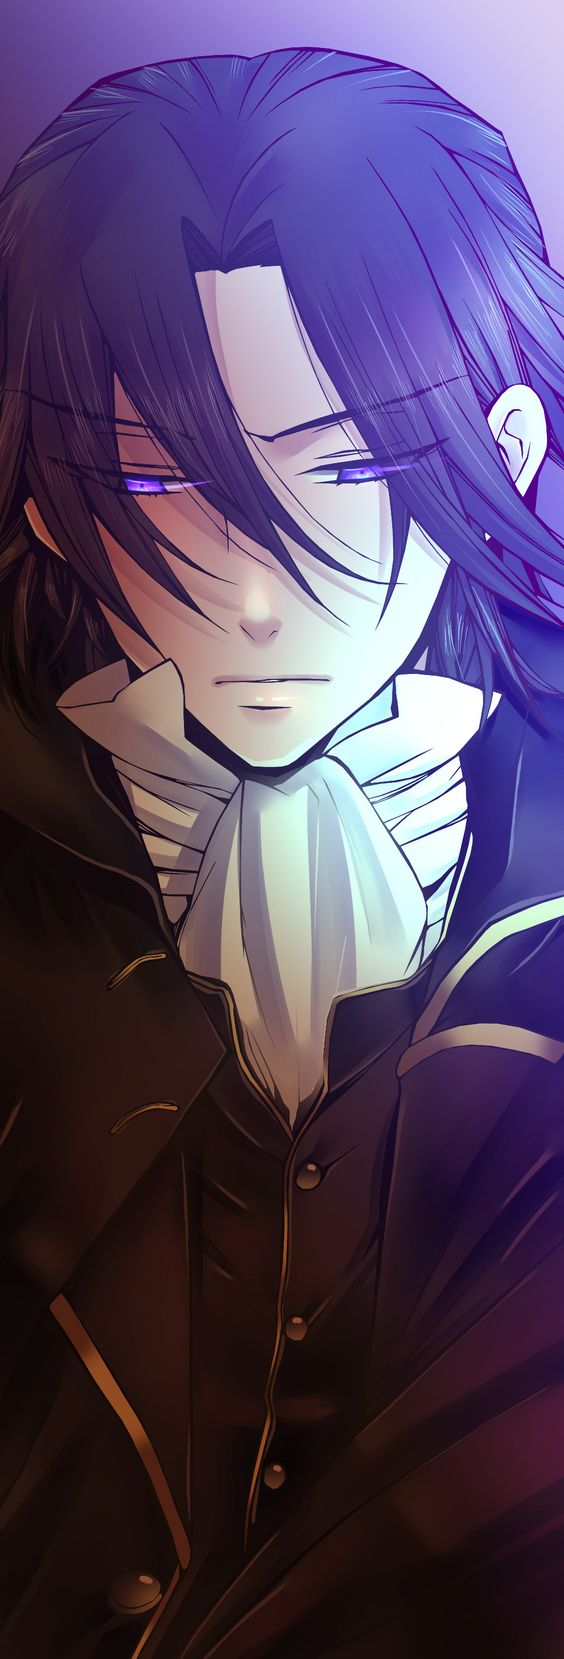 Pandora Hearts Judge by ShionMion